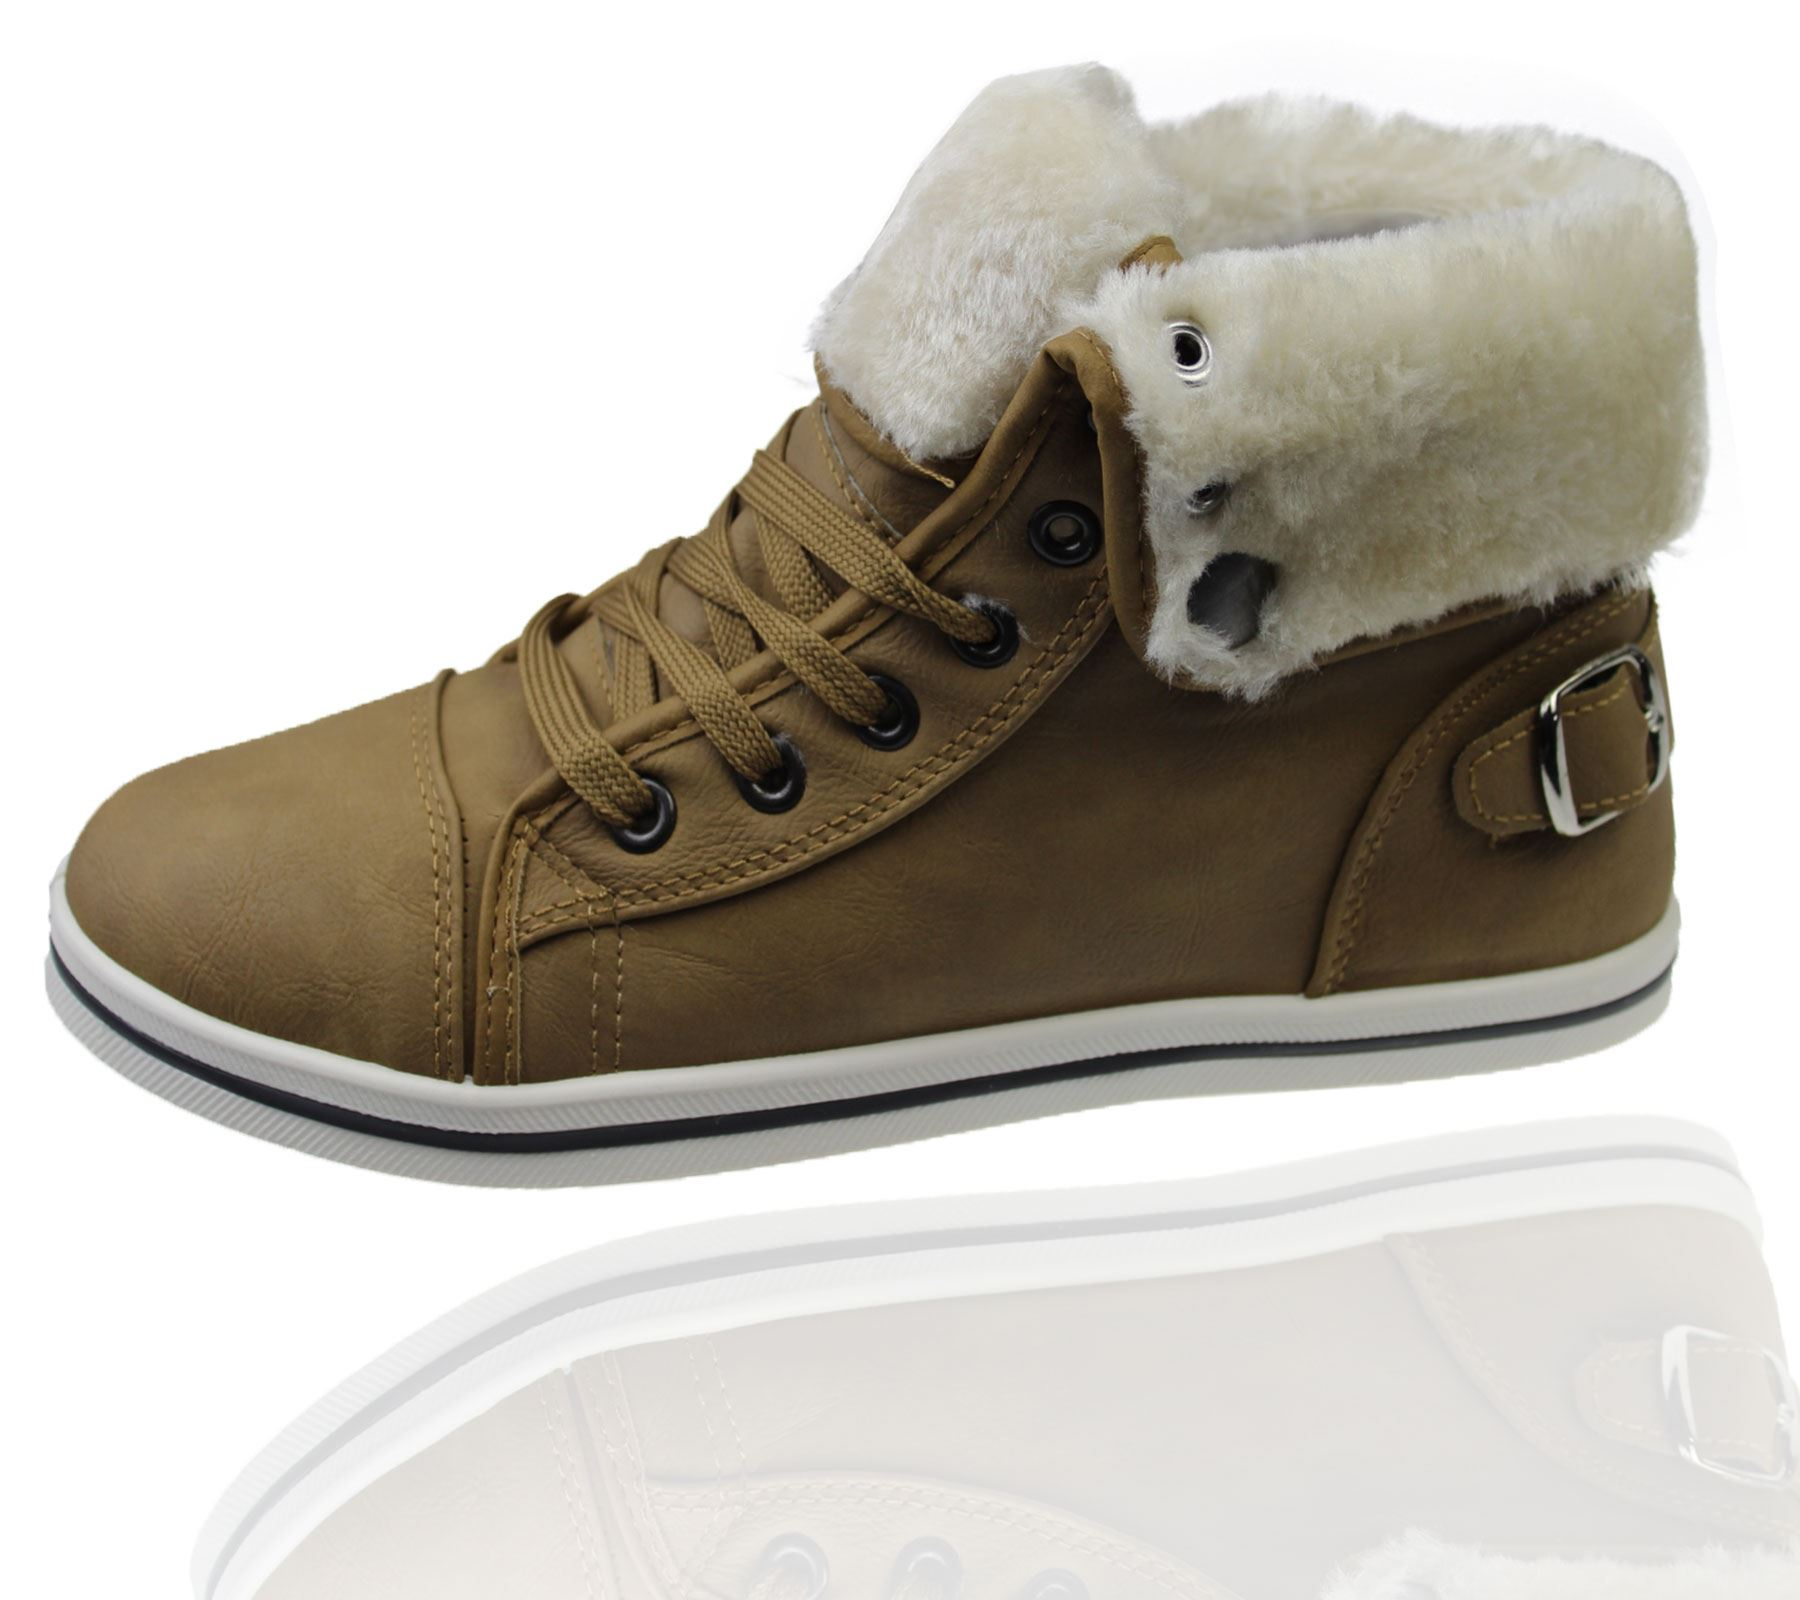 Girls-Boots-Womens-Warm-Lined-High-Top-Ankle-Trainer-Ladies-Winter-Shoes-Size miniatura 6